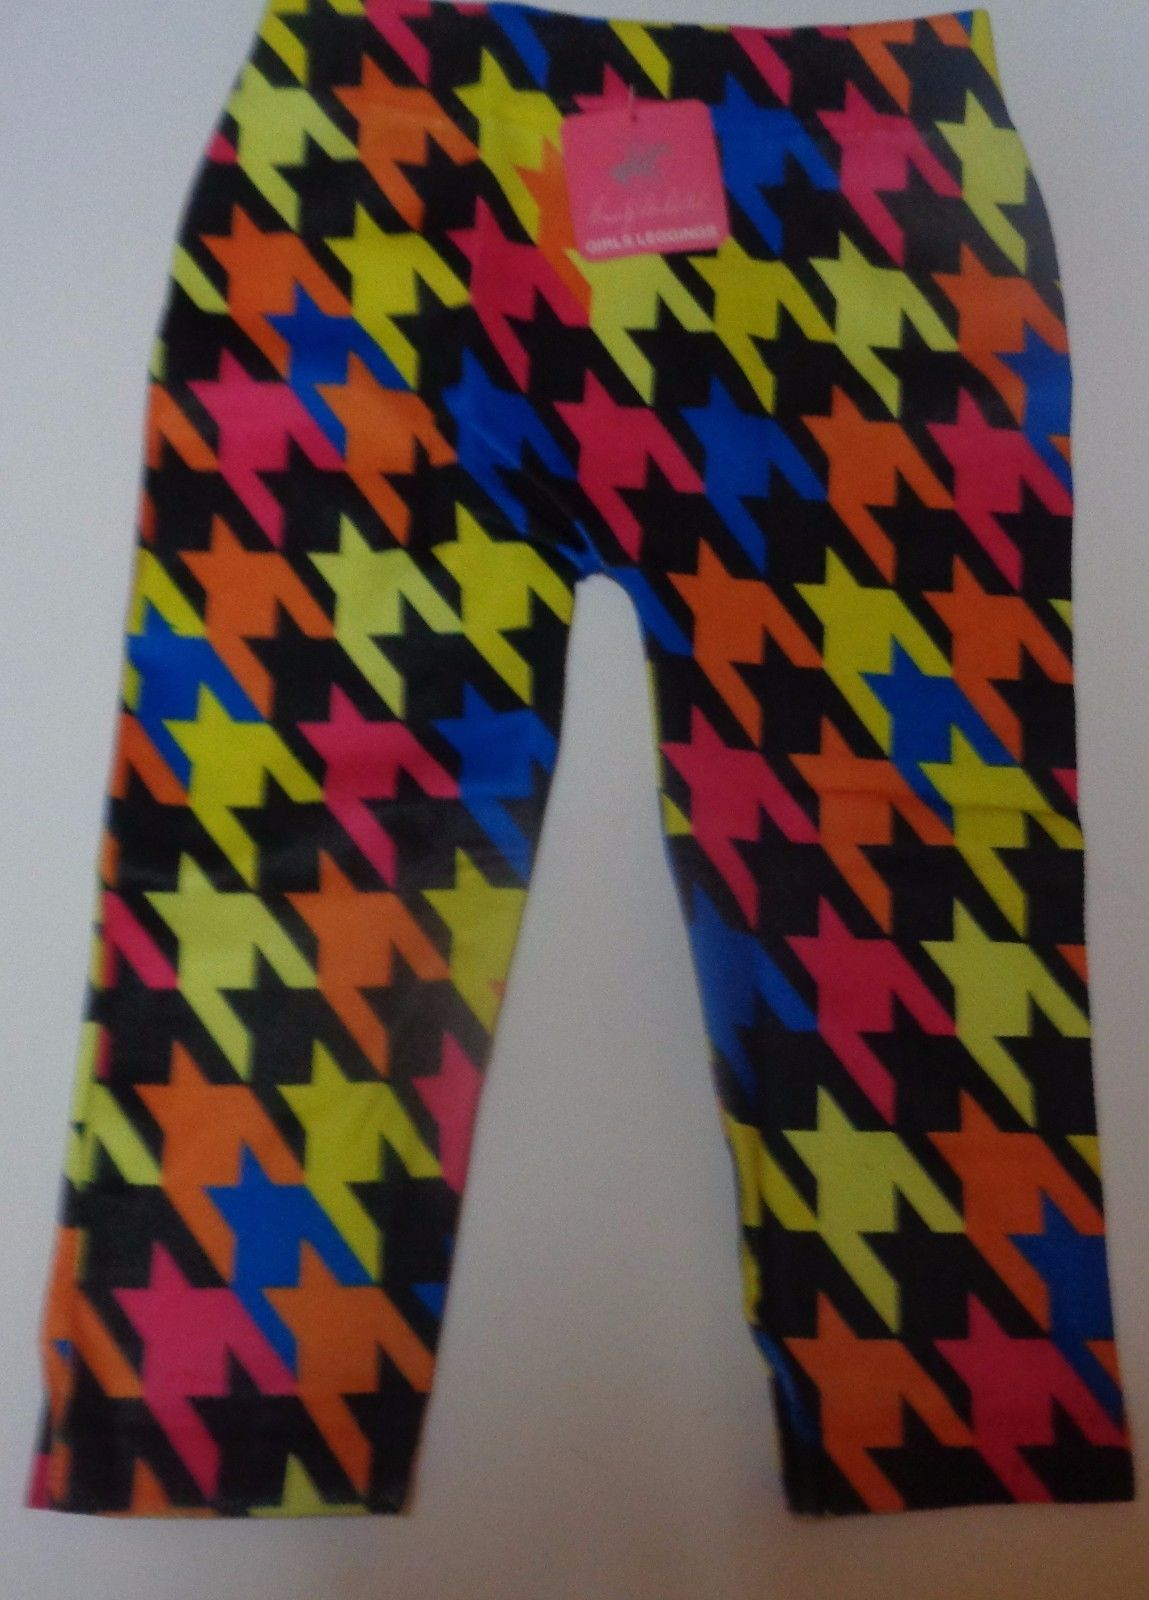 Youth Girls Leggings Geometrical Multi-Color NWT Beverly Hills Sz 2-4, 4-6